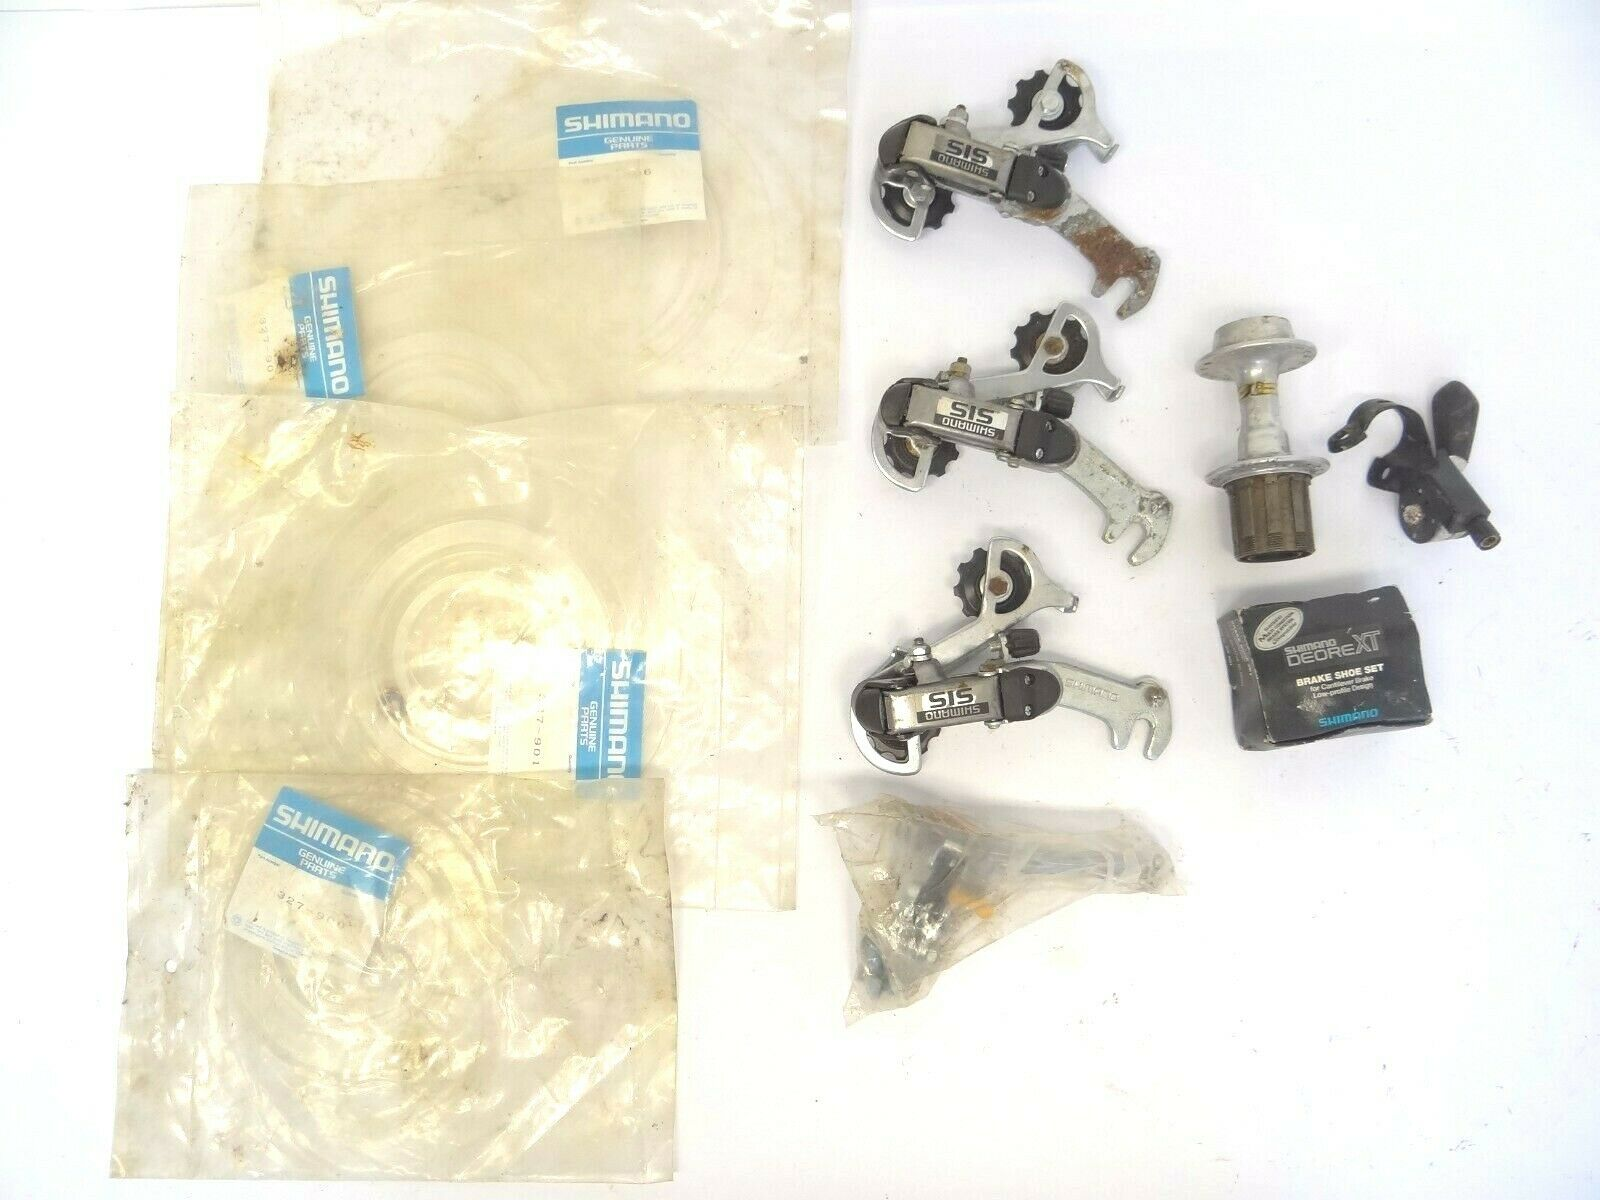 Vintage Lot Shimano  Deore FH-MT60 Rear Hub Uniglide Caliper Bike Derailer Parts  fast delivery and free shipping on all orders